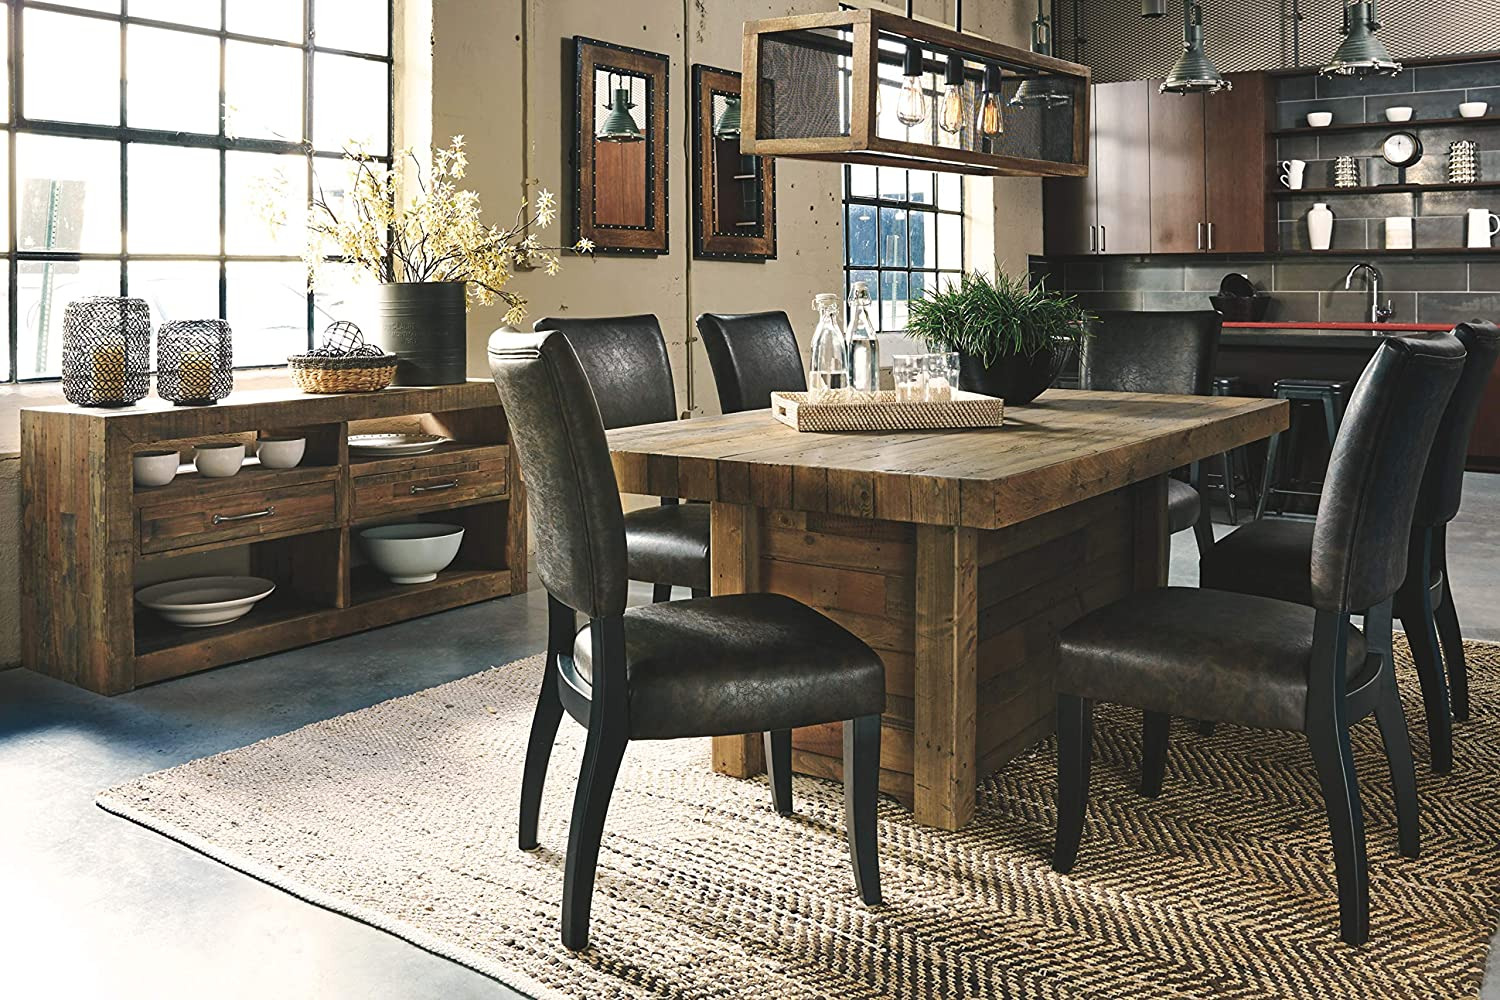 reclaimed-wood-farmhouse-dining-table-thick-butcher-block-top-76-inch-tabletop-unique-rustic-furniture-for-sale-online